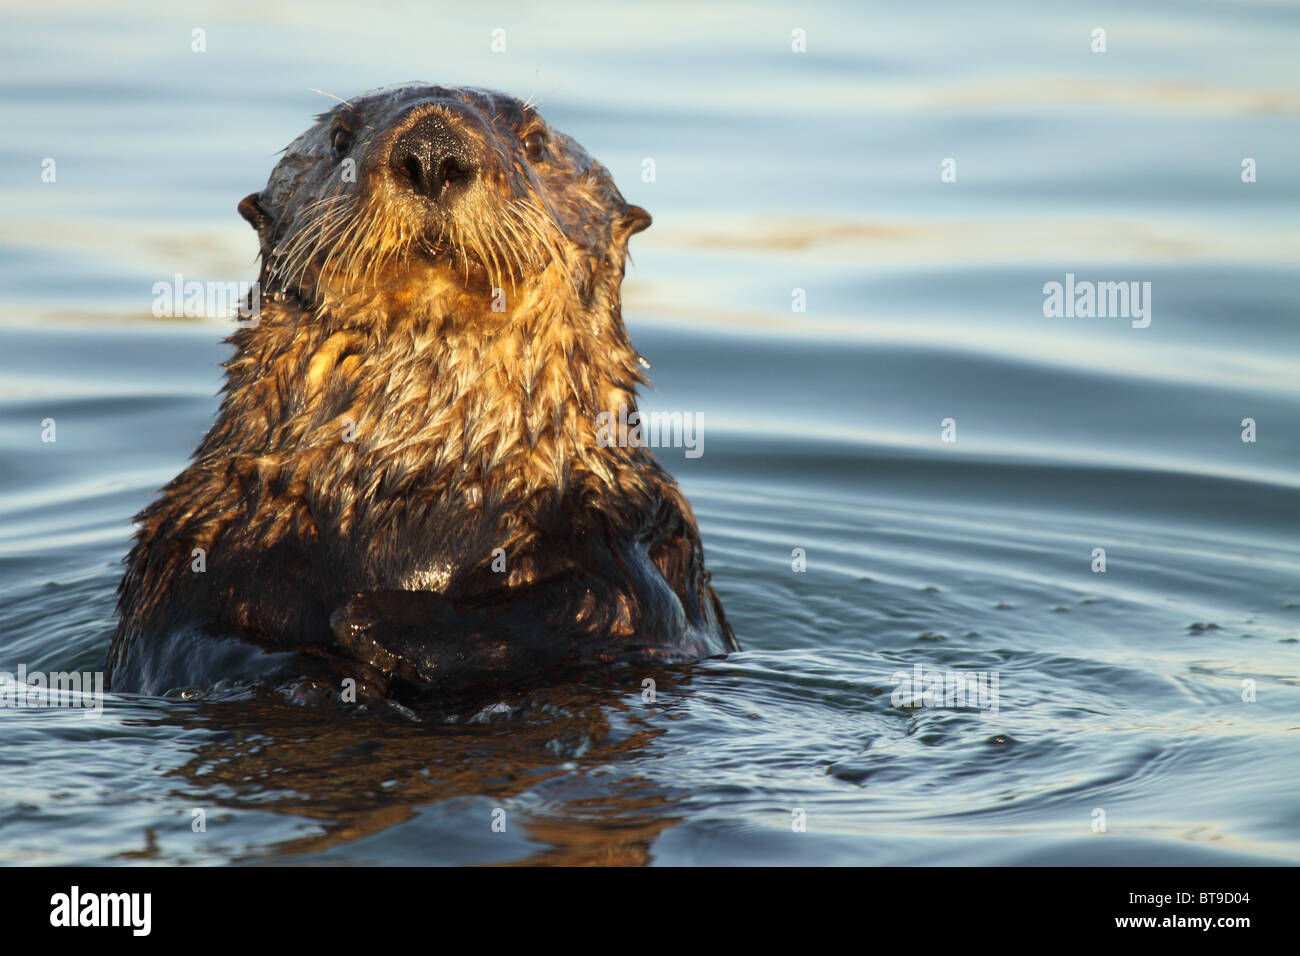 A Sea Otter popping up for a better look. - Stock Image